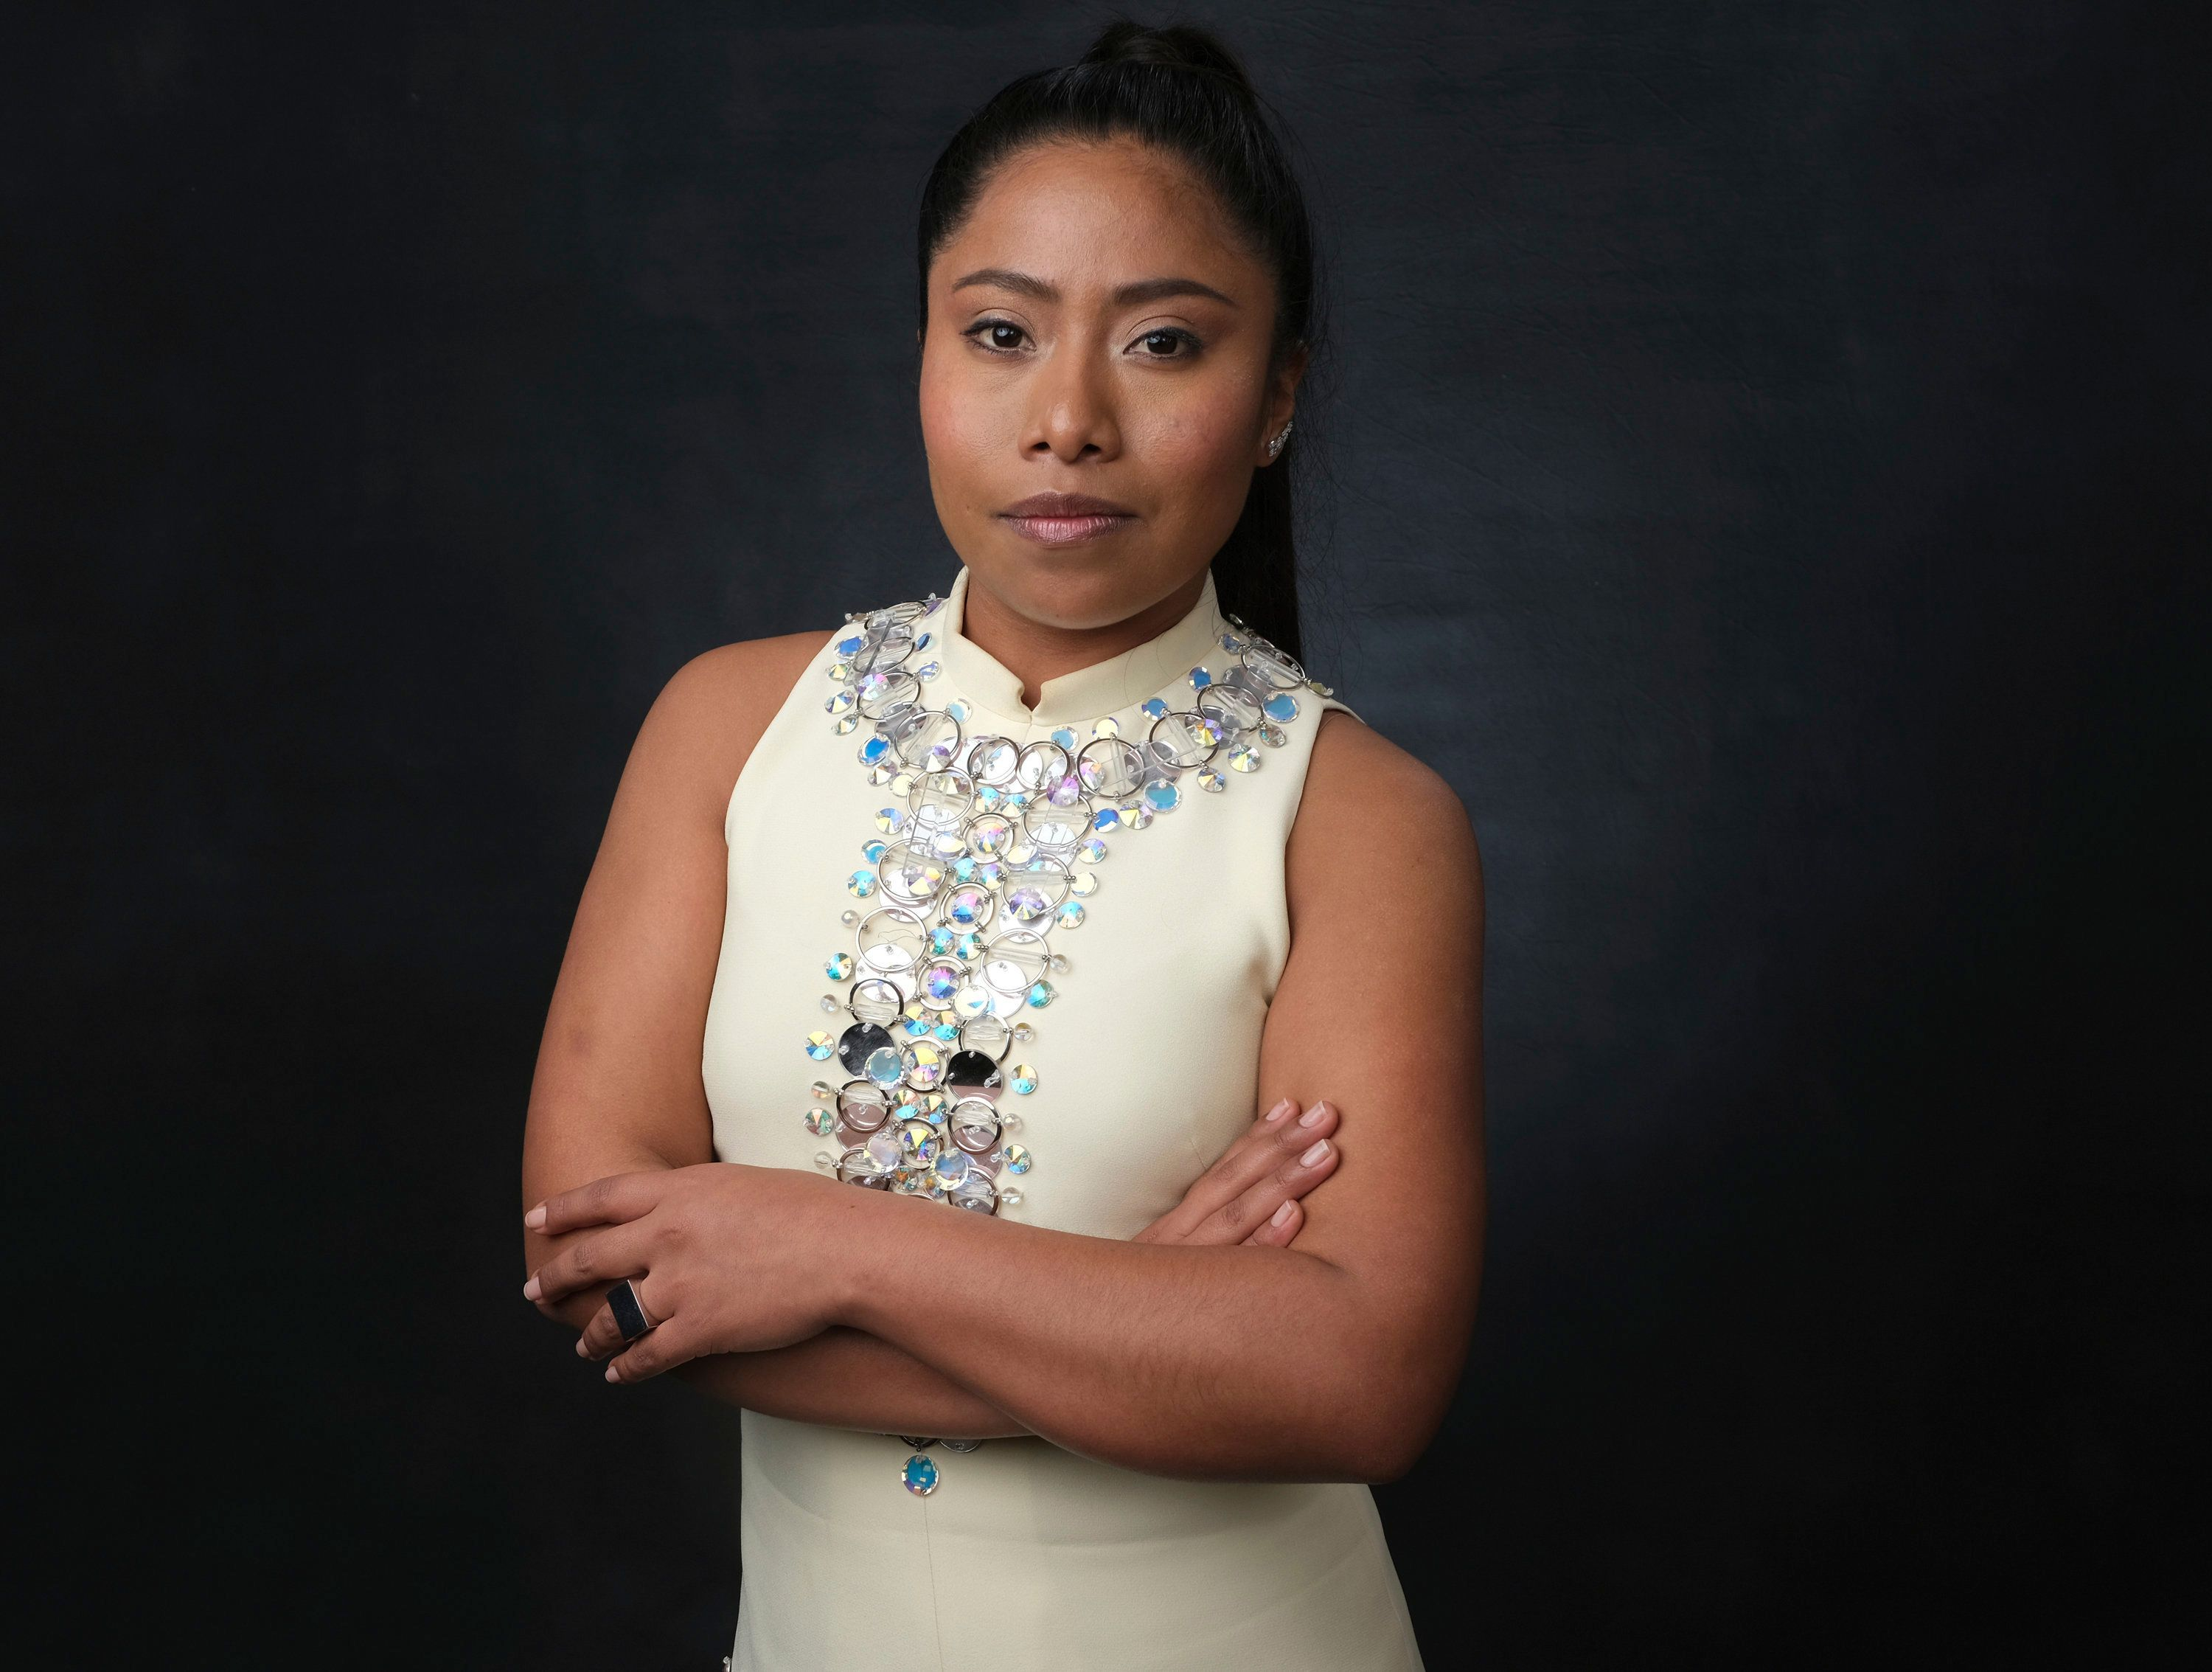 Yalitza Aparicio poses at the Academy Awards Nominees Luncheon at The Beverly Hilton Hotel -- Feb. 4, 2019, Beverly Hills, Ca